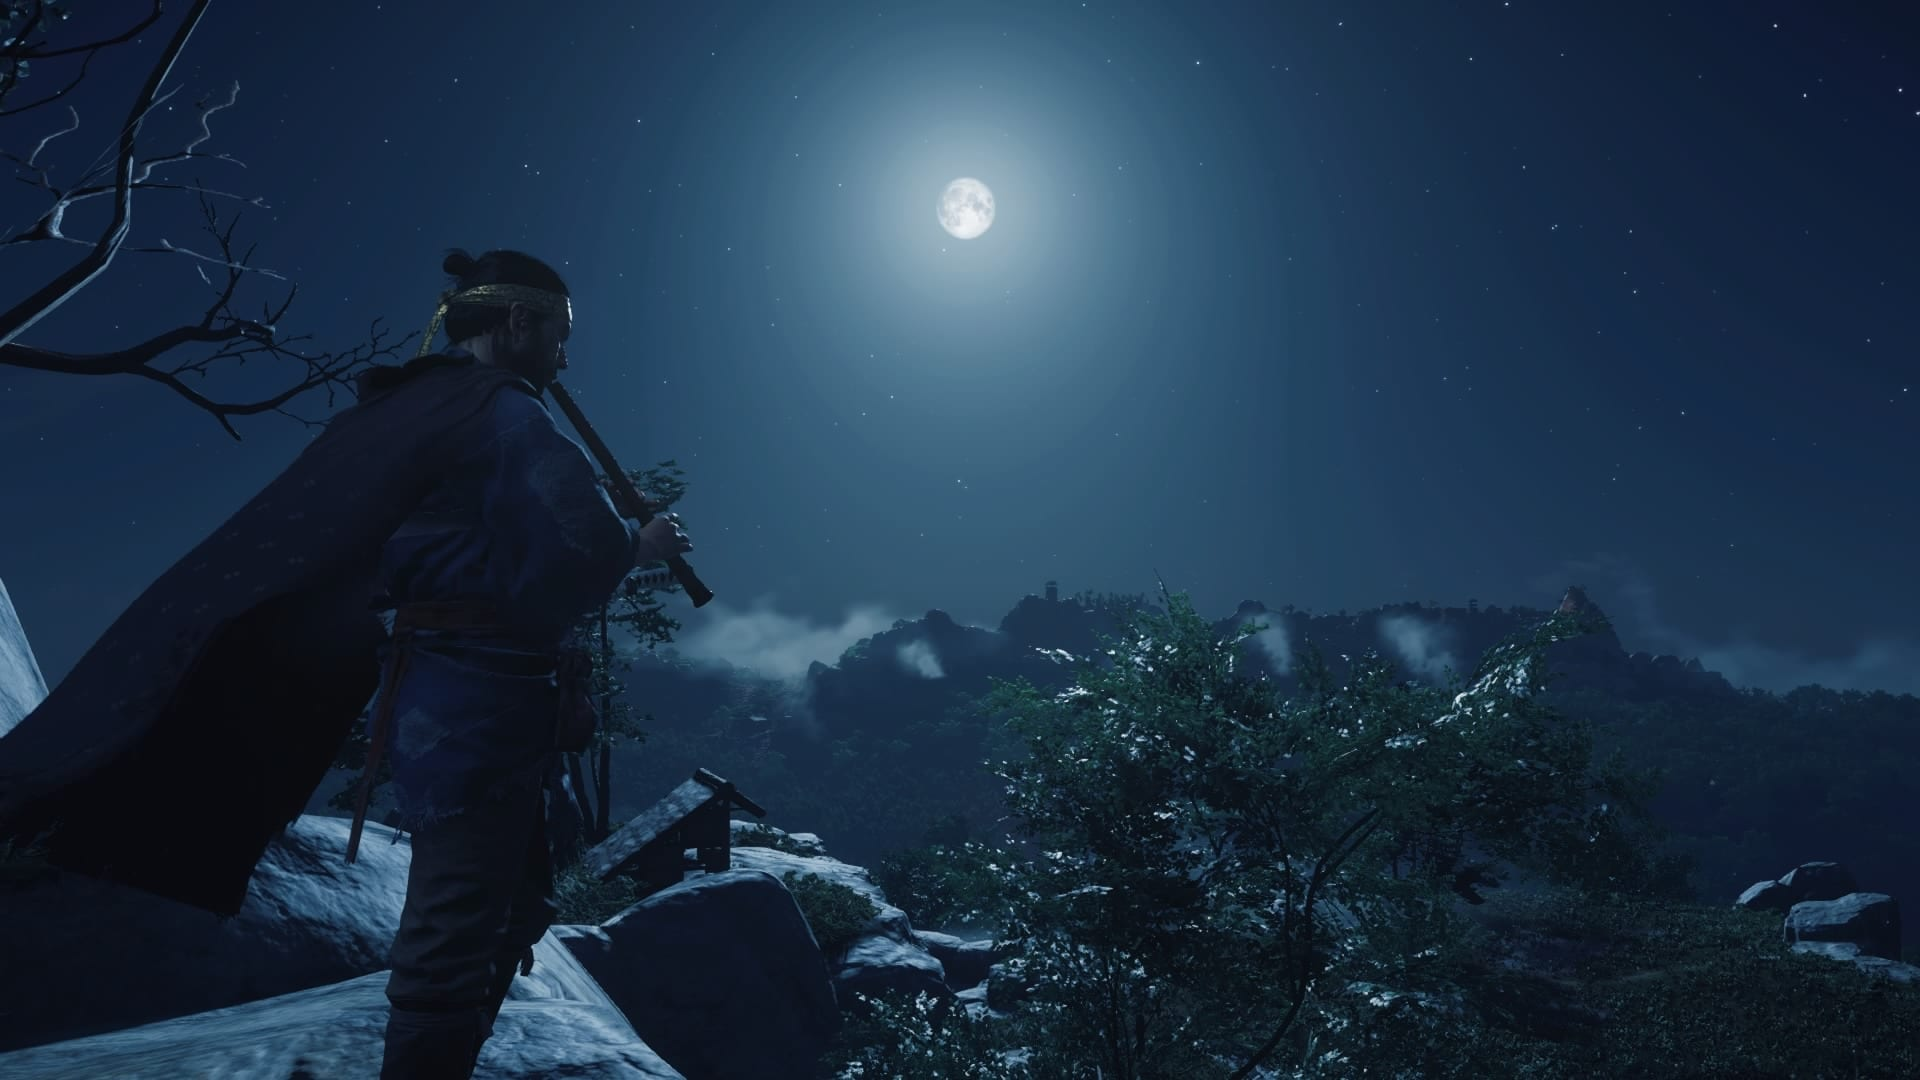 Leak shows off cancelled game 'The Prophecy' from Ghost of Tsushima devs